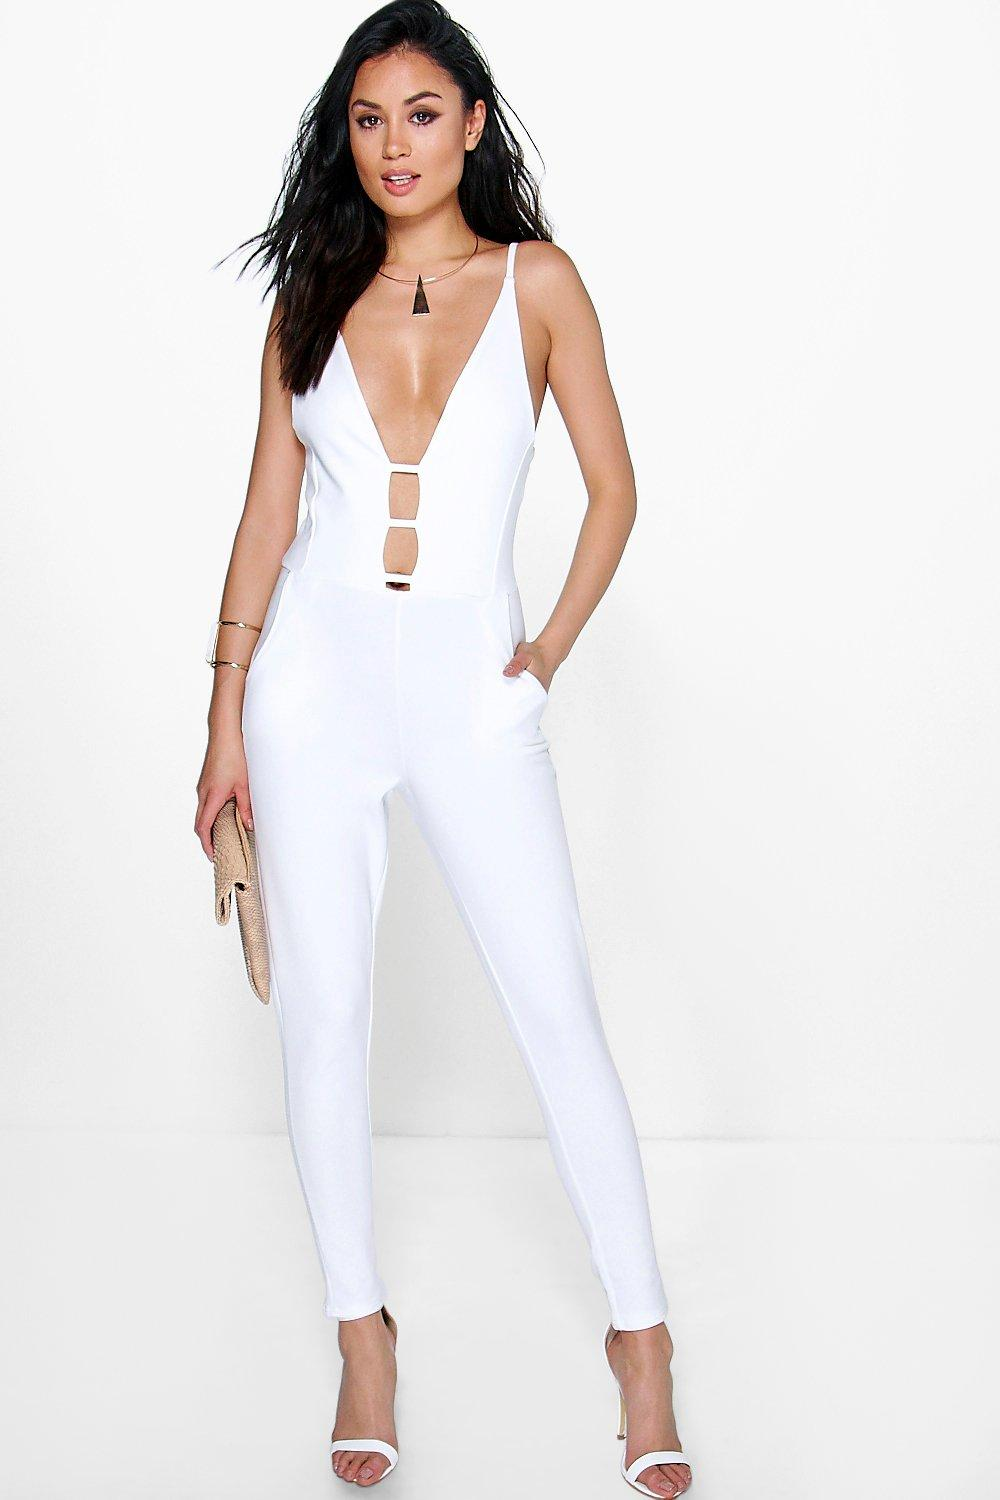 Shop for skinny leg jumpsuit online at Target. Free shipping on purchases over $35 and save 5% every day with your Target REDcard.